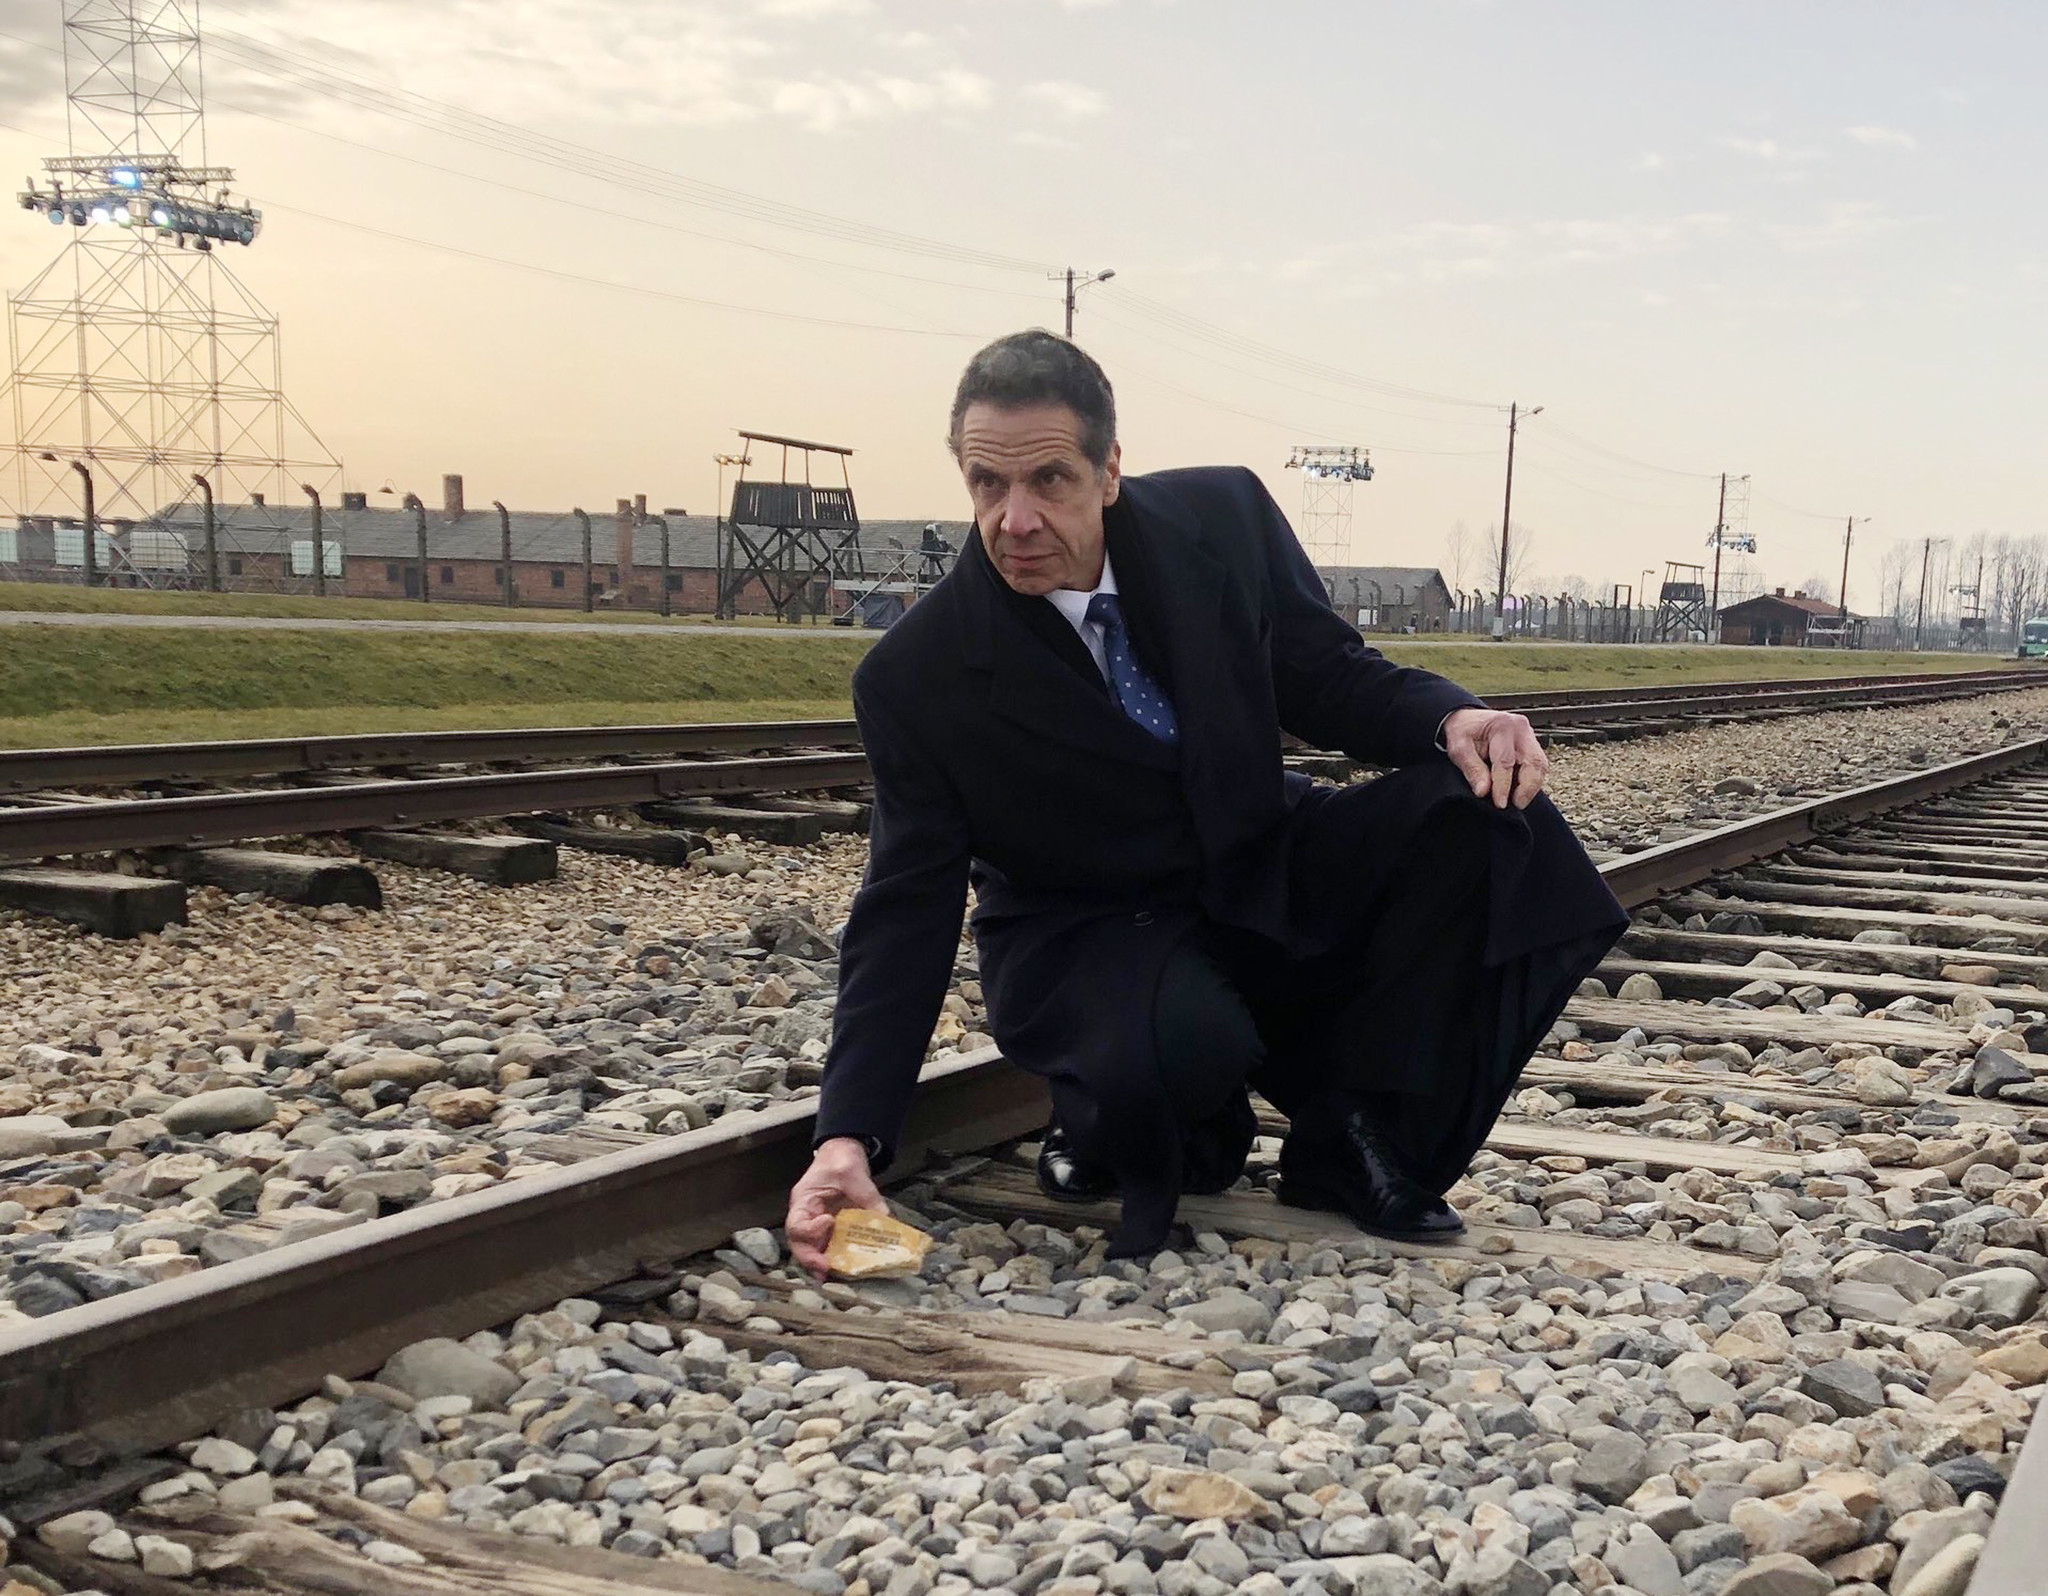 Cuomo attends commemoration of 75th anniversary of Auschwitz liberation